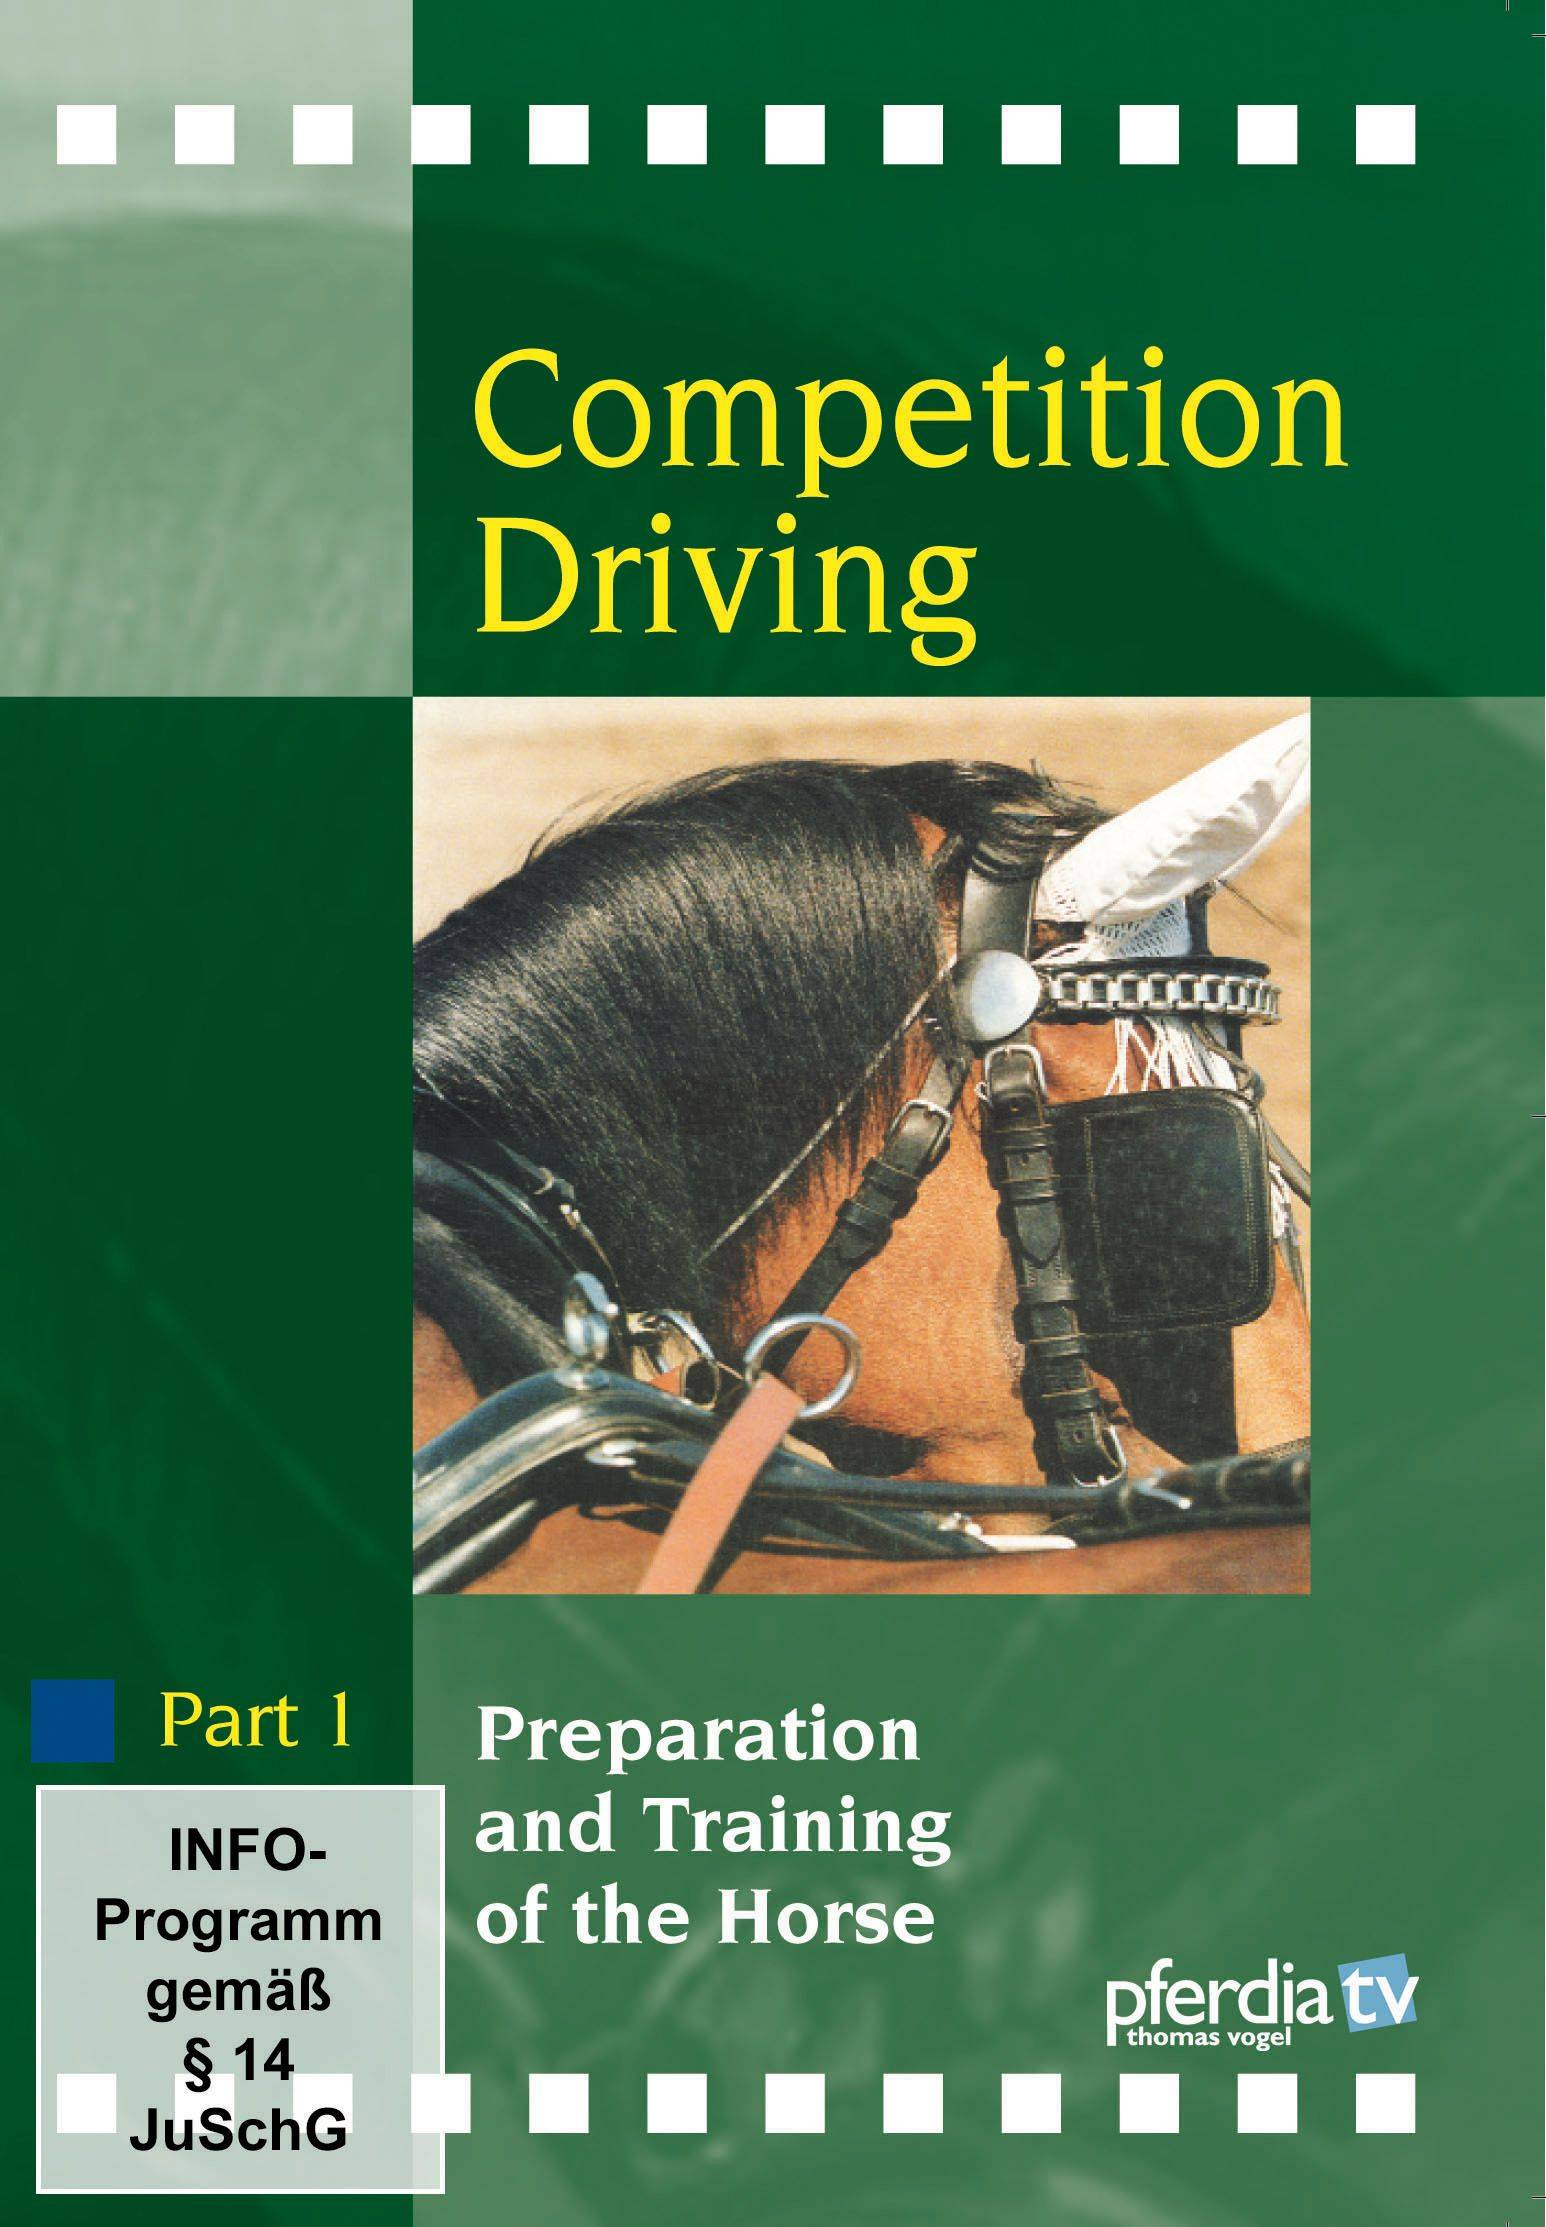 Competitive Driving Part 1 DVD with Frank Lutz